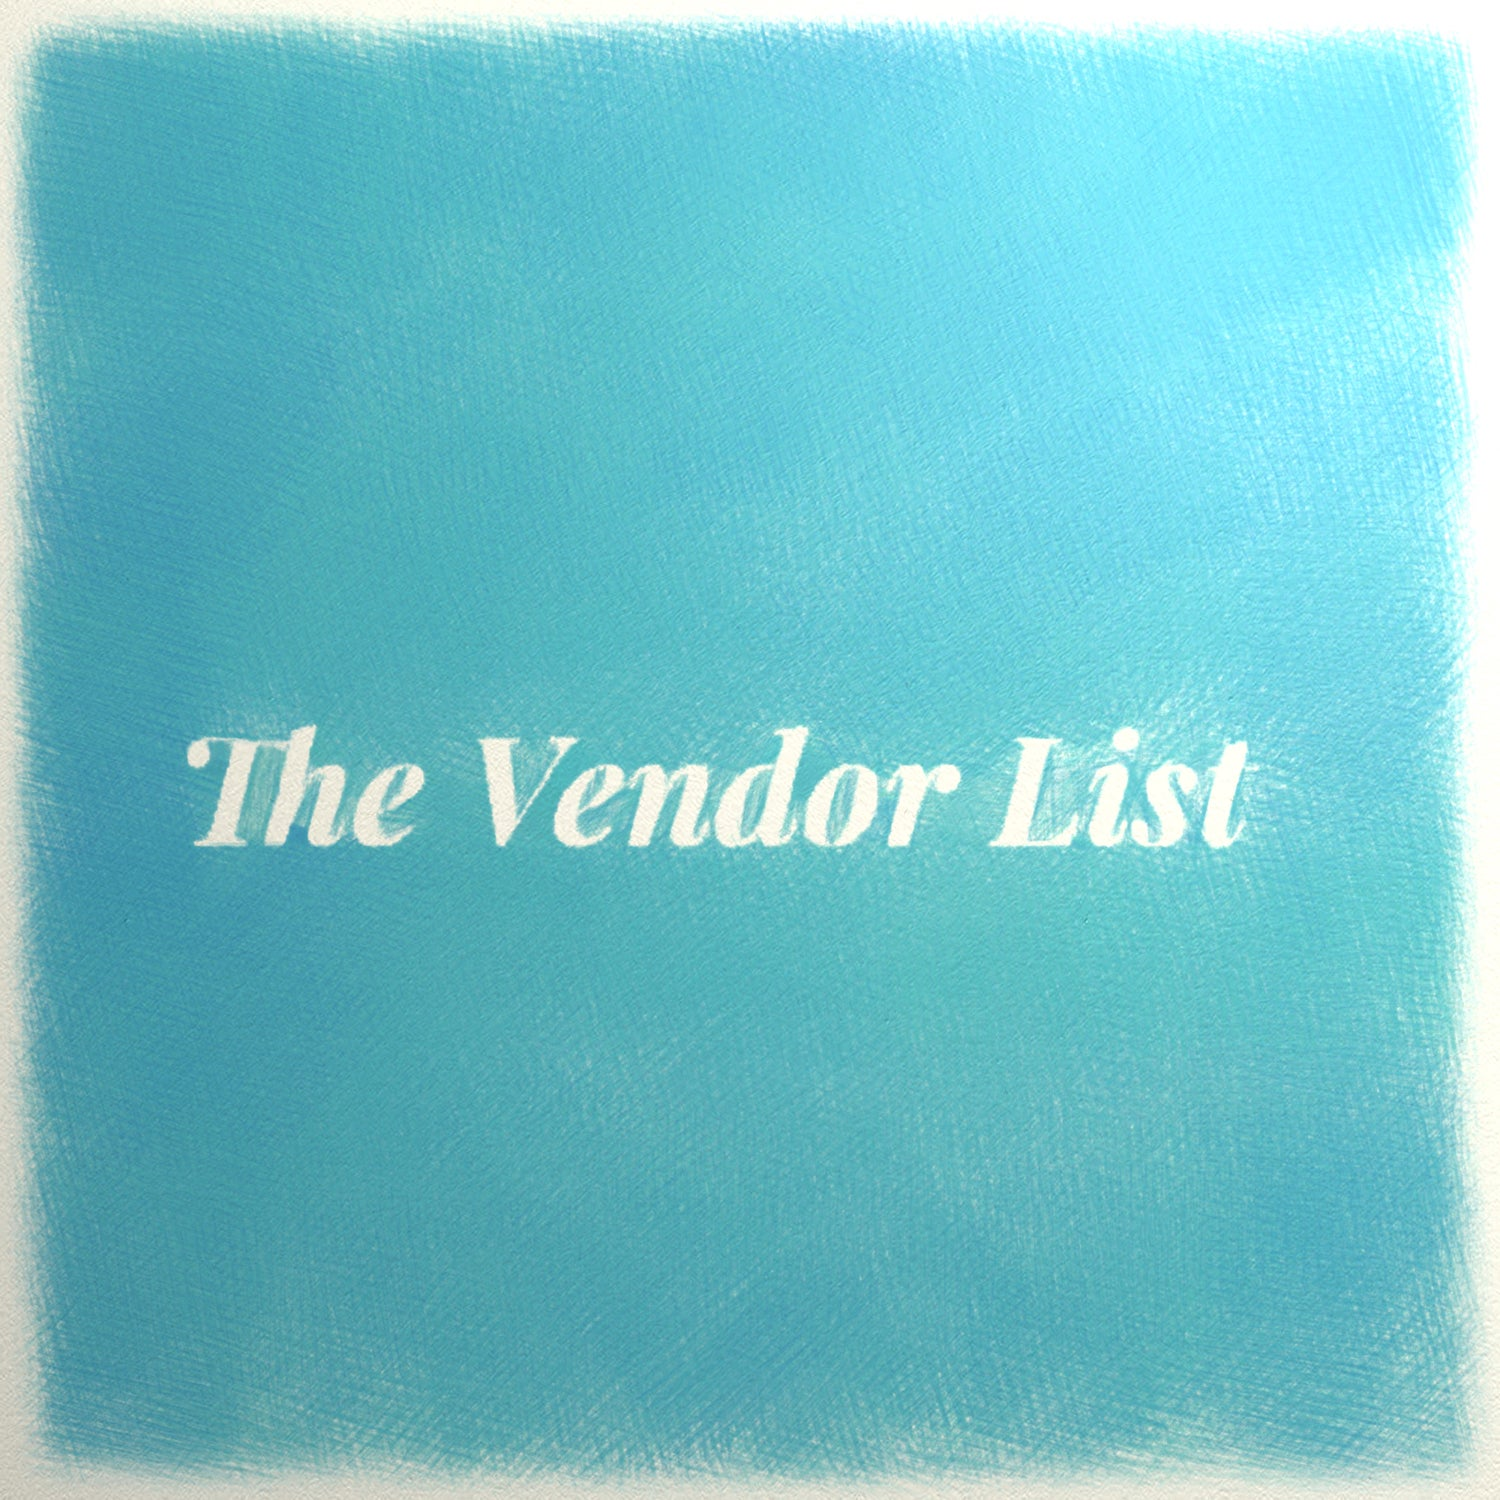 Image of The Vendor List